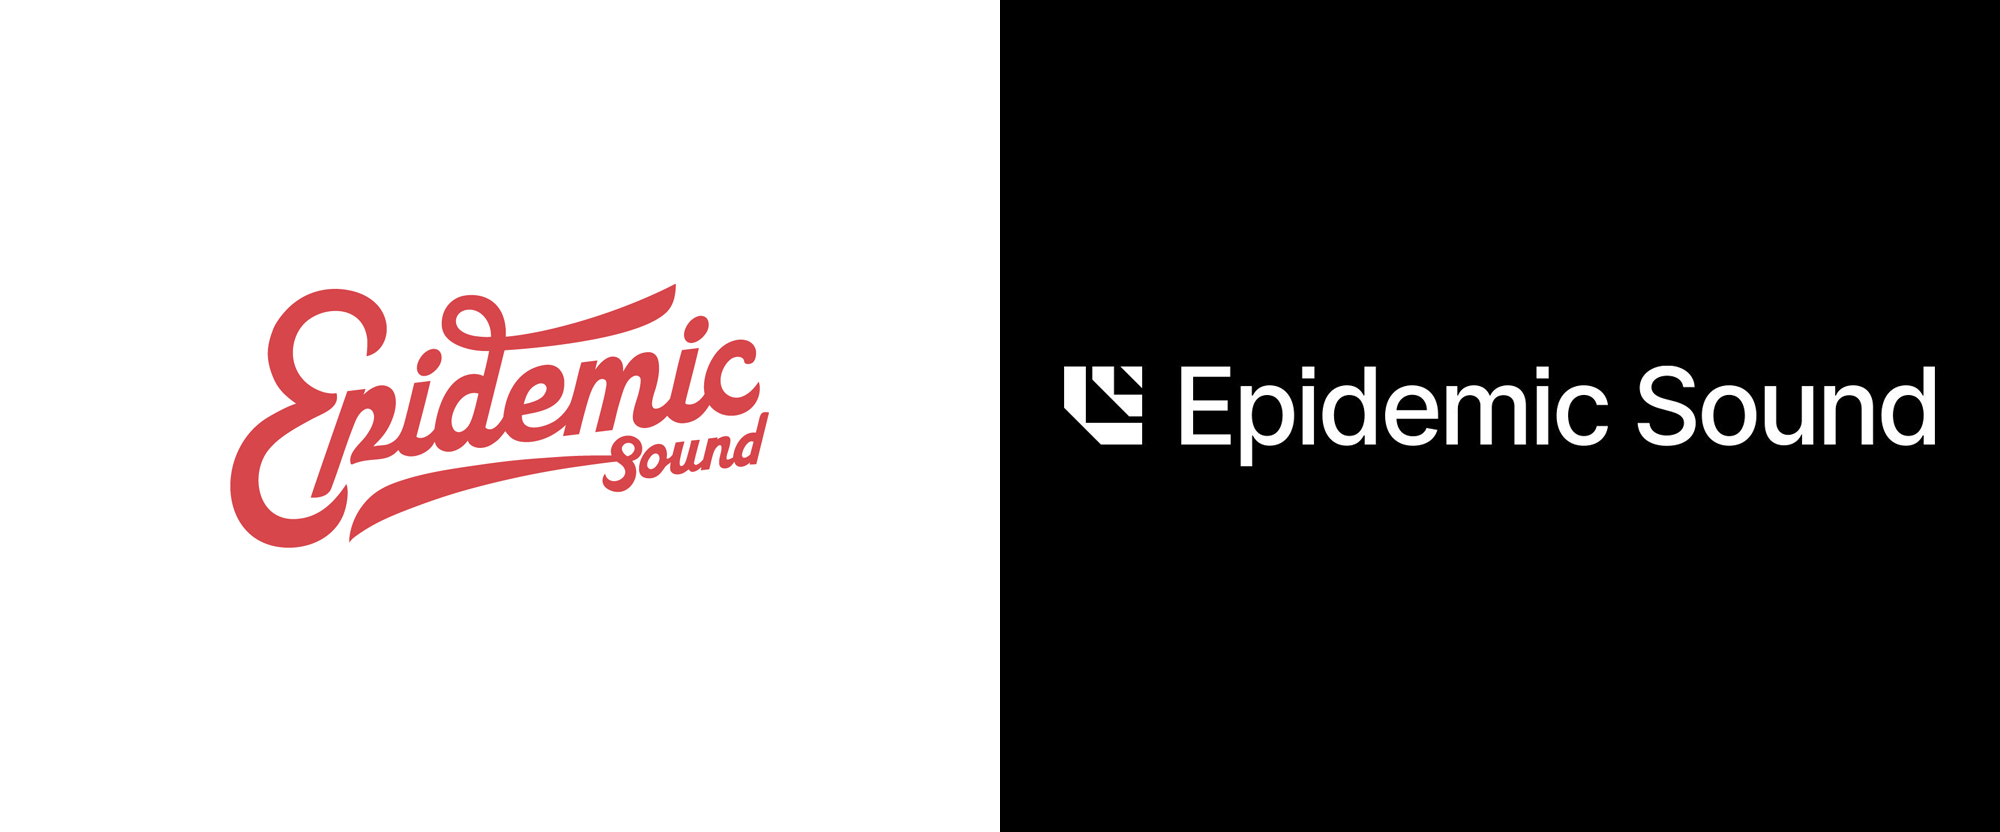 New Logo for Epidemic Sound